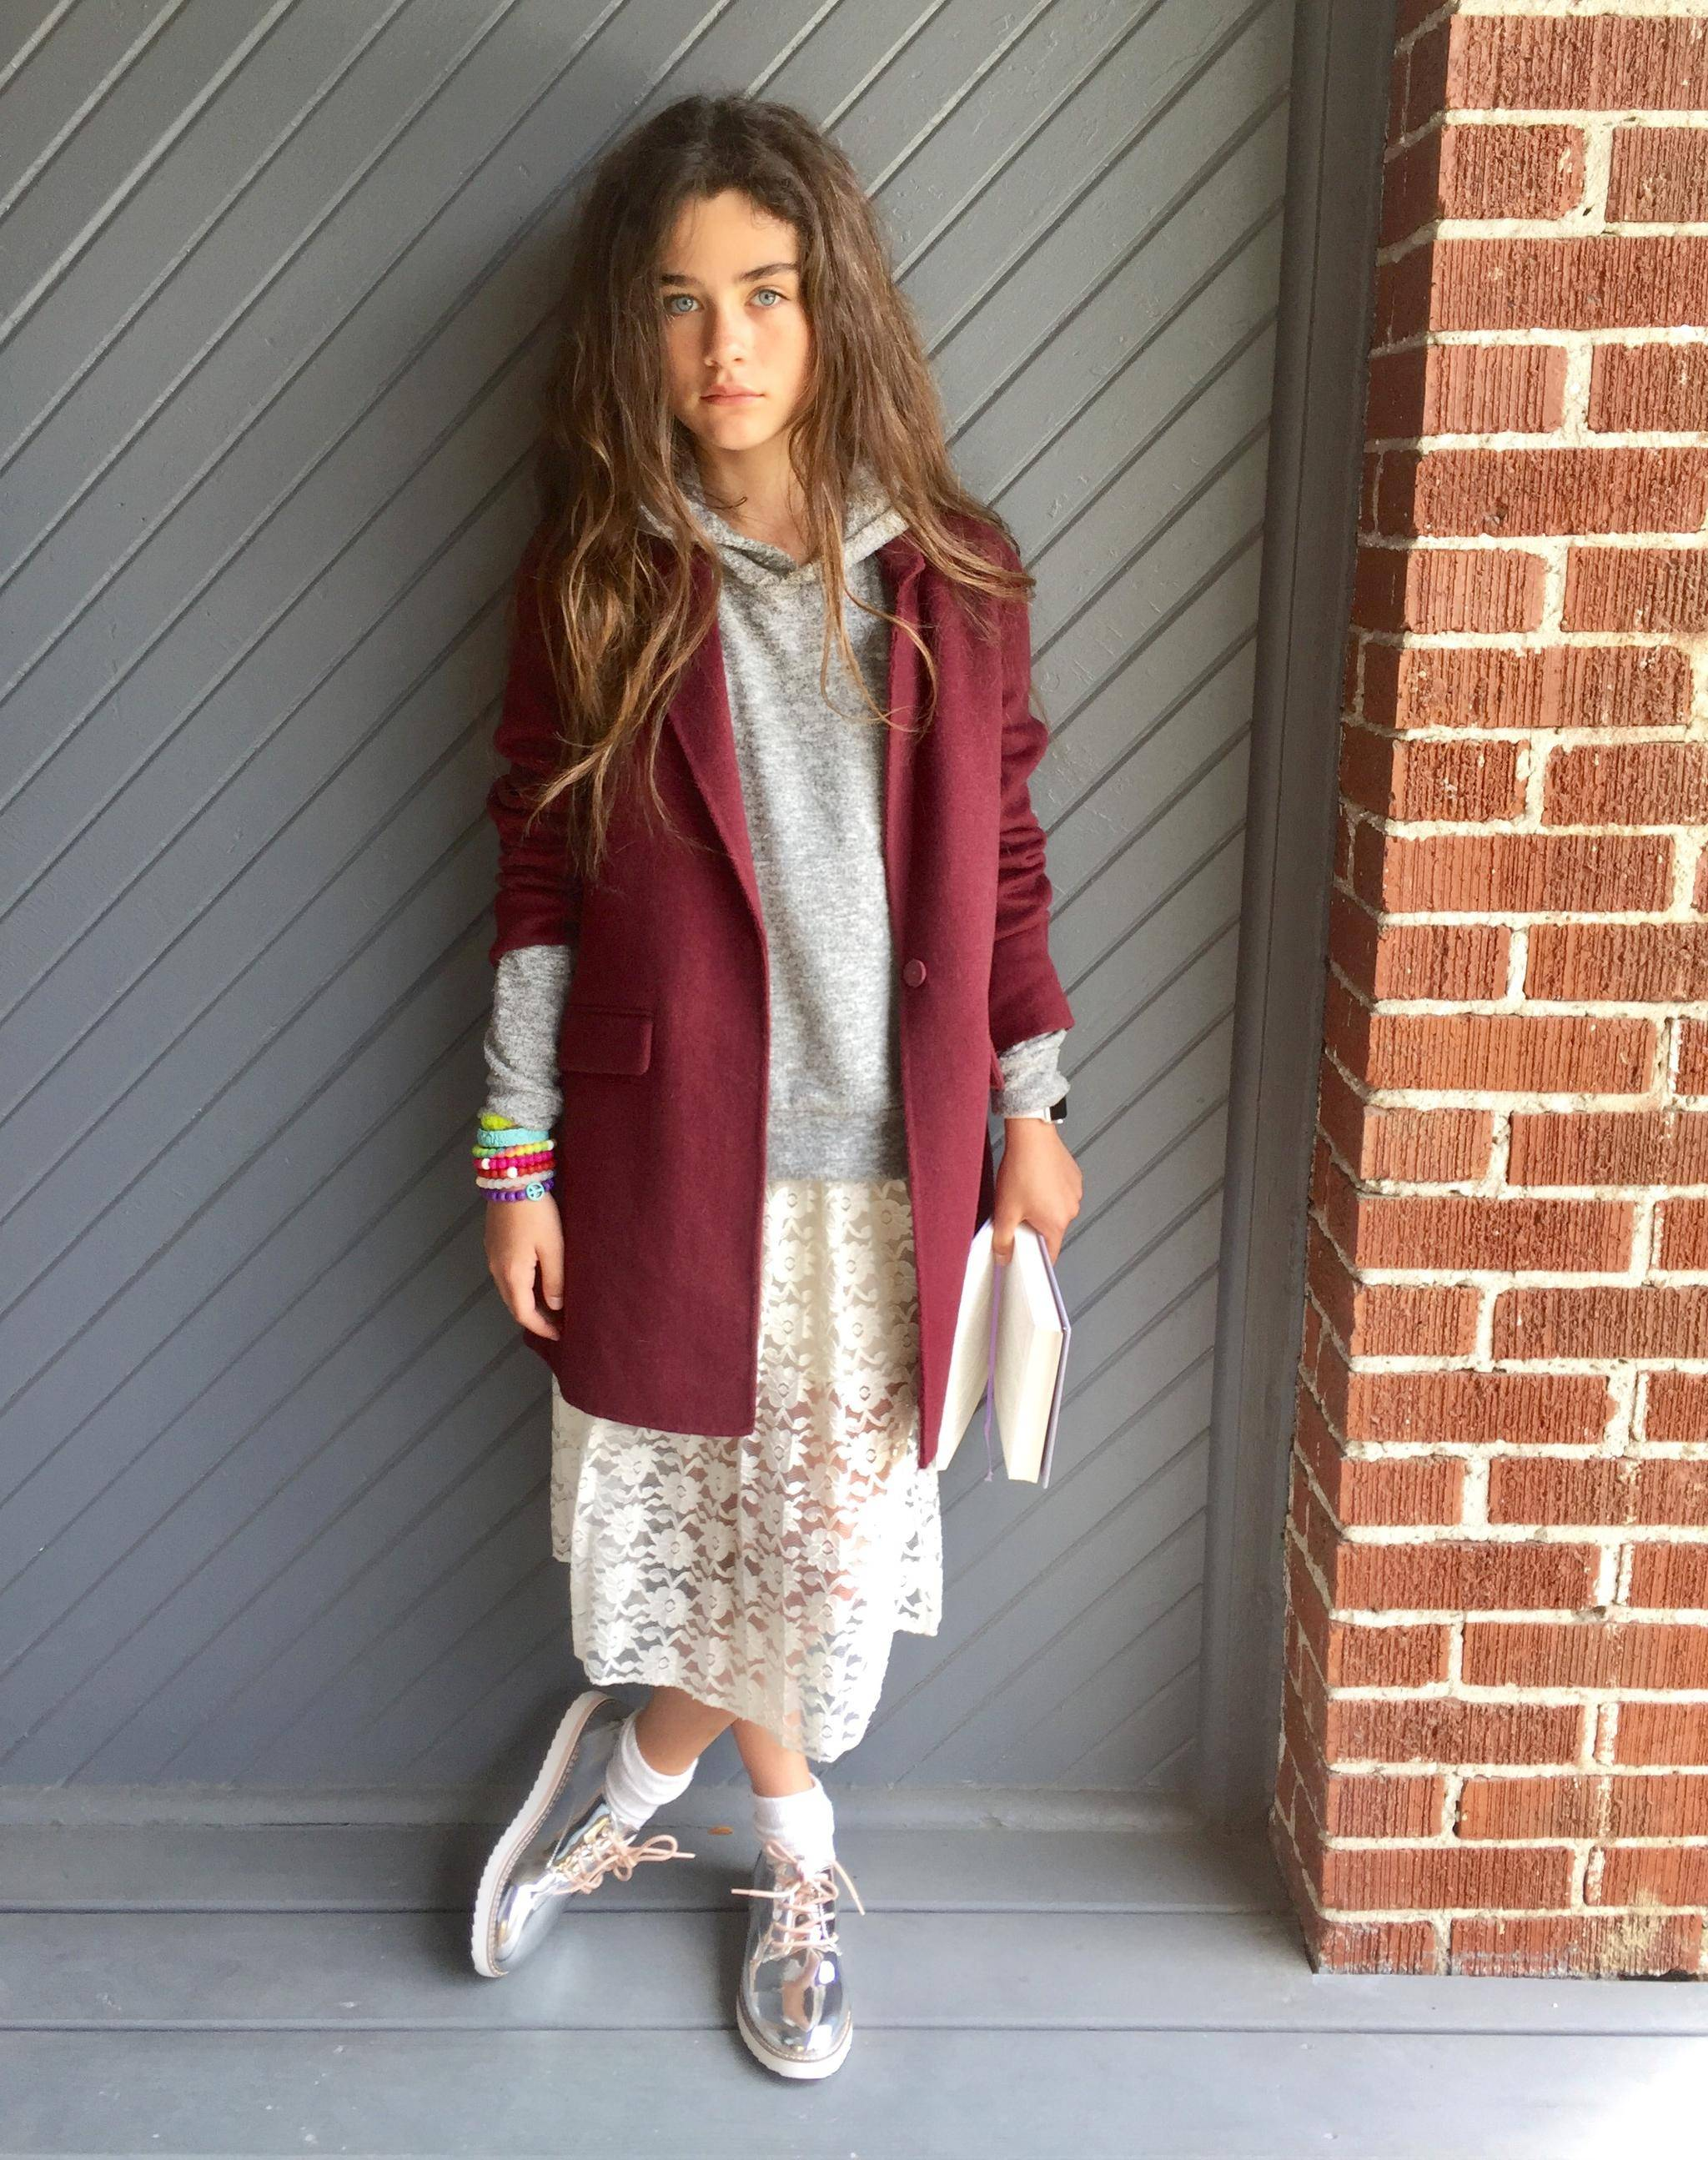 Fashion Forward Kids Share Their Back To School Looks